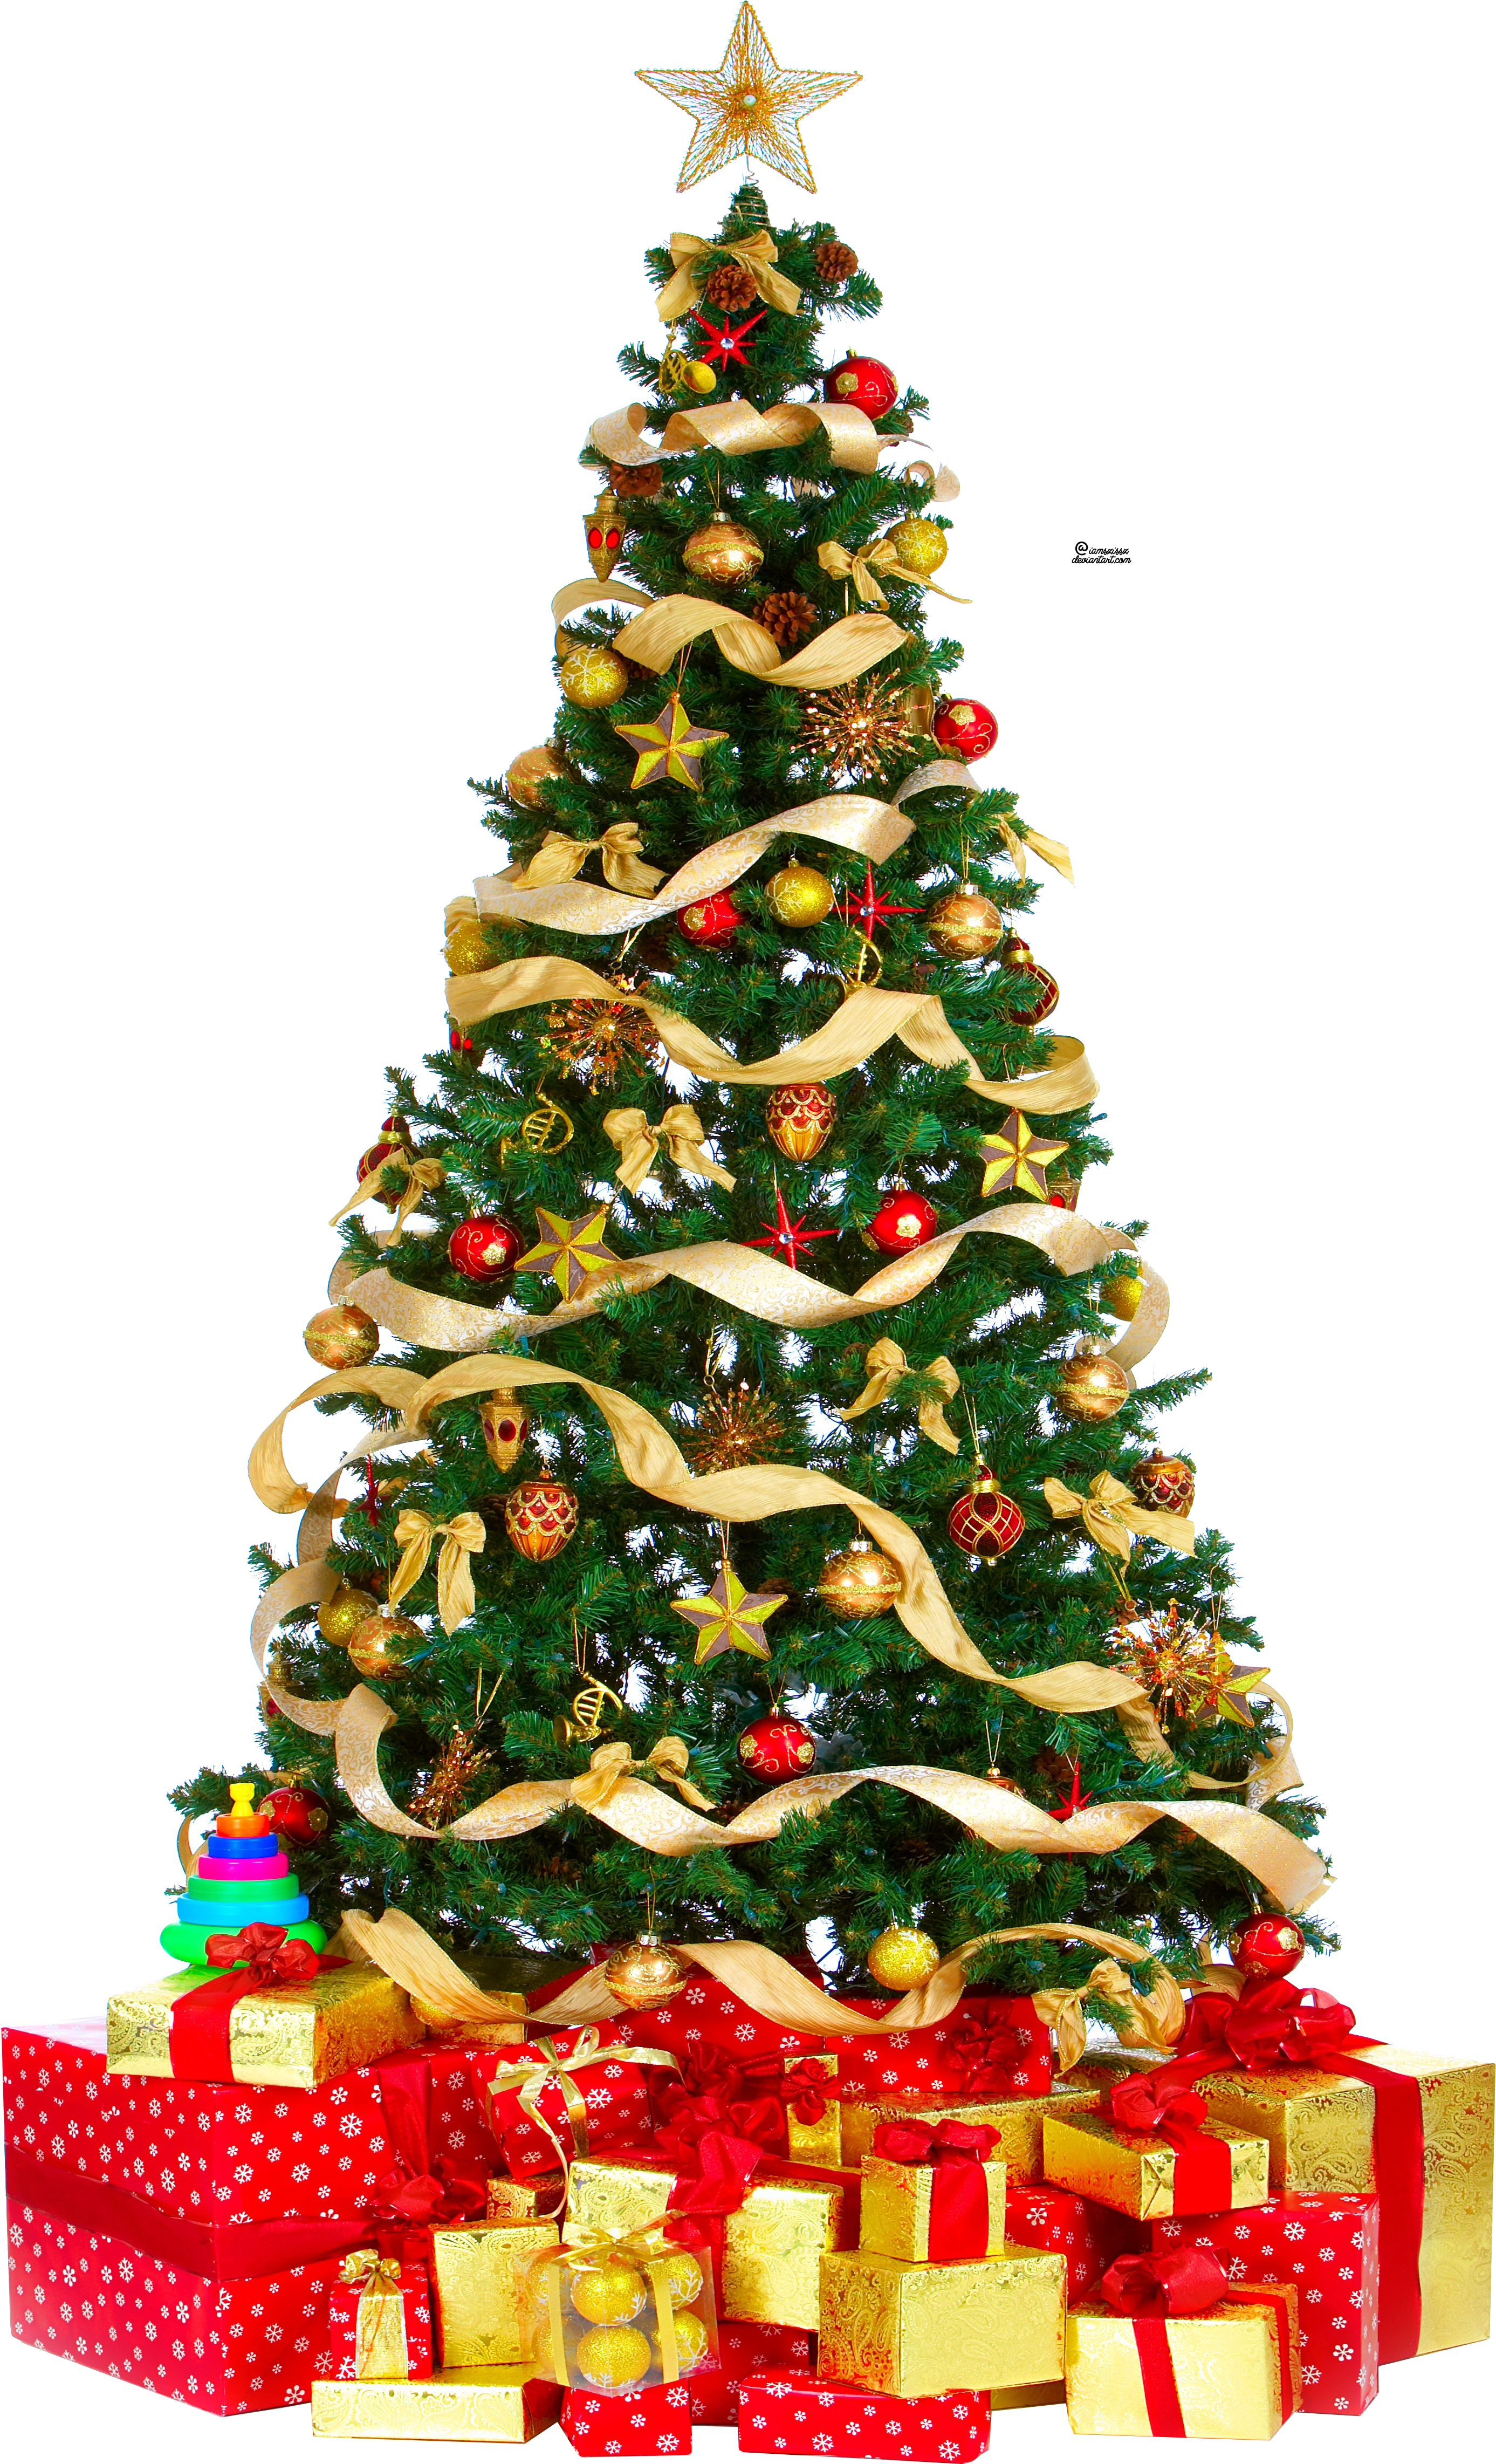 Christmas Tree PNG Transparent Christmas Tree.PNG Images.